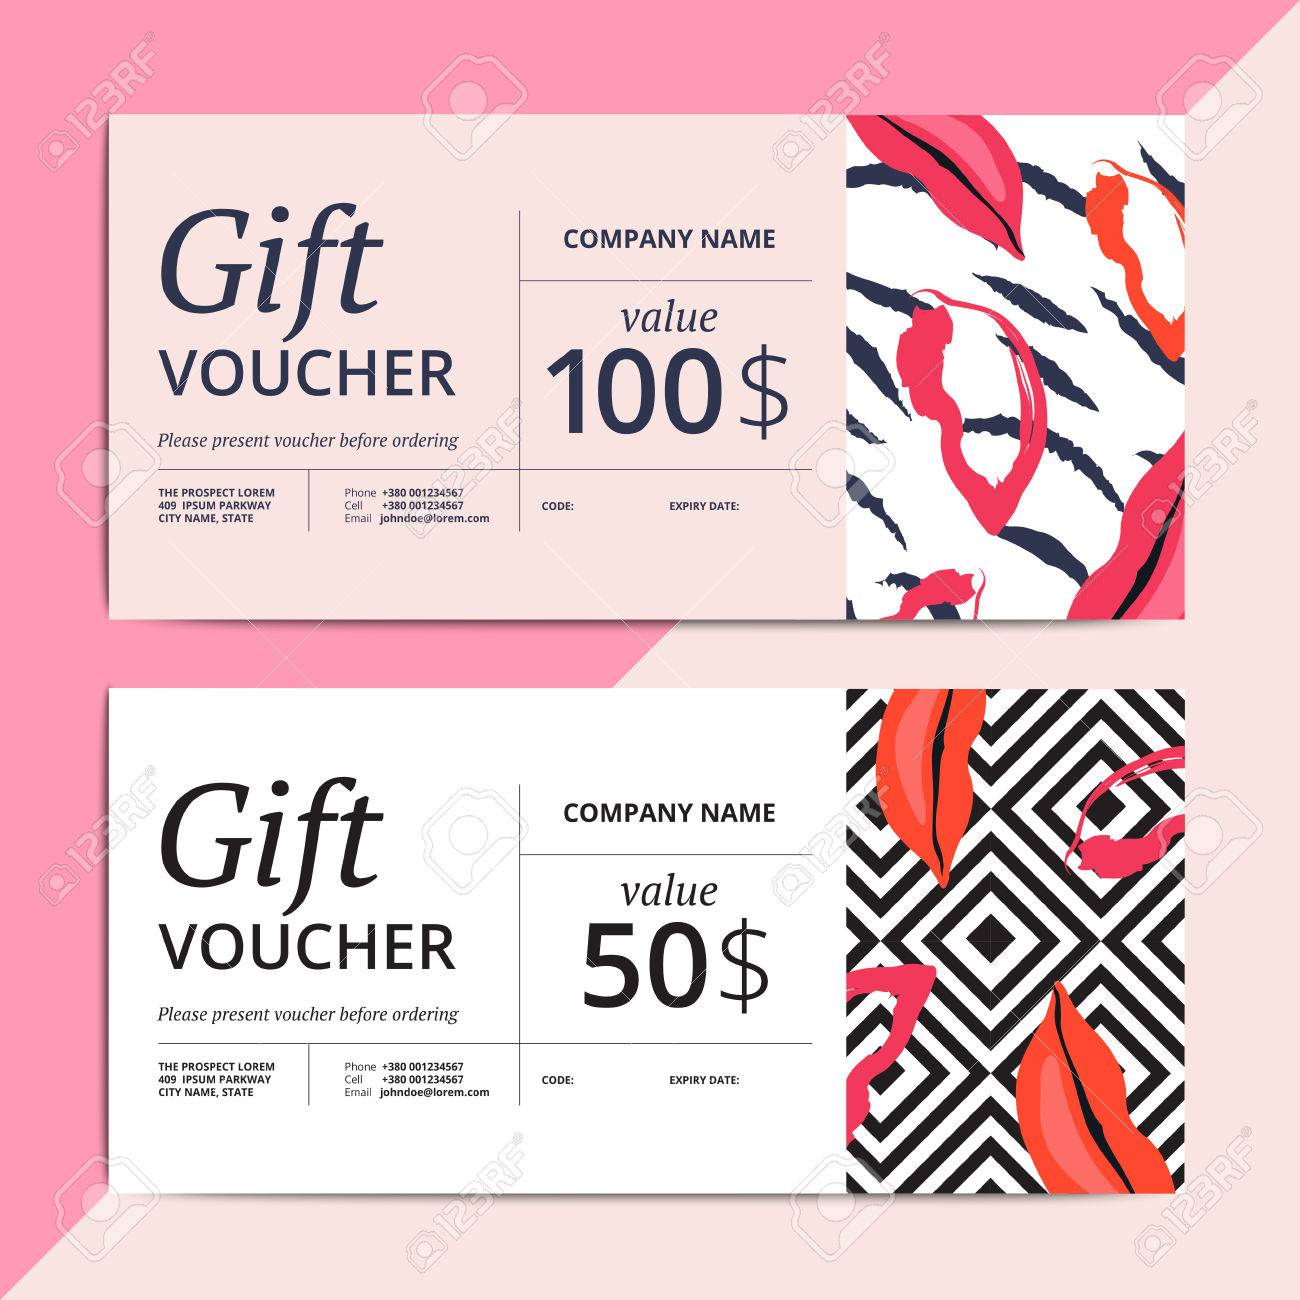 Trendy abstract gift voucher card templates modern luxury trendy abstract gift voucher card templates modern luxury discount coupon or certificate layout with artistic yadclub Choice Image